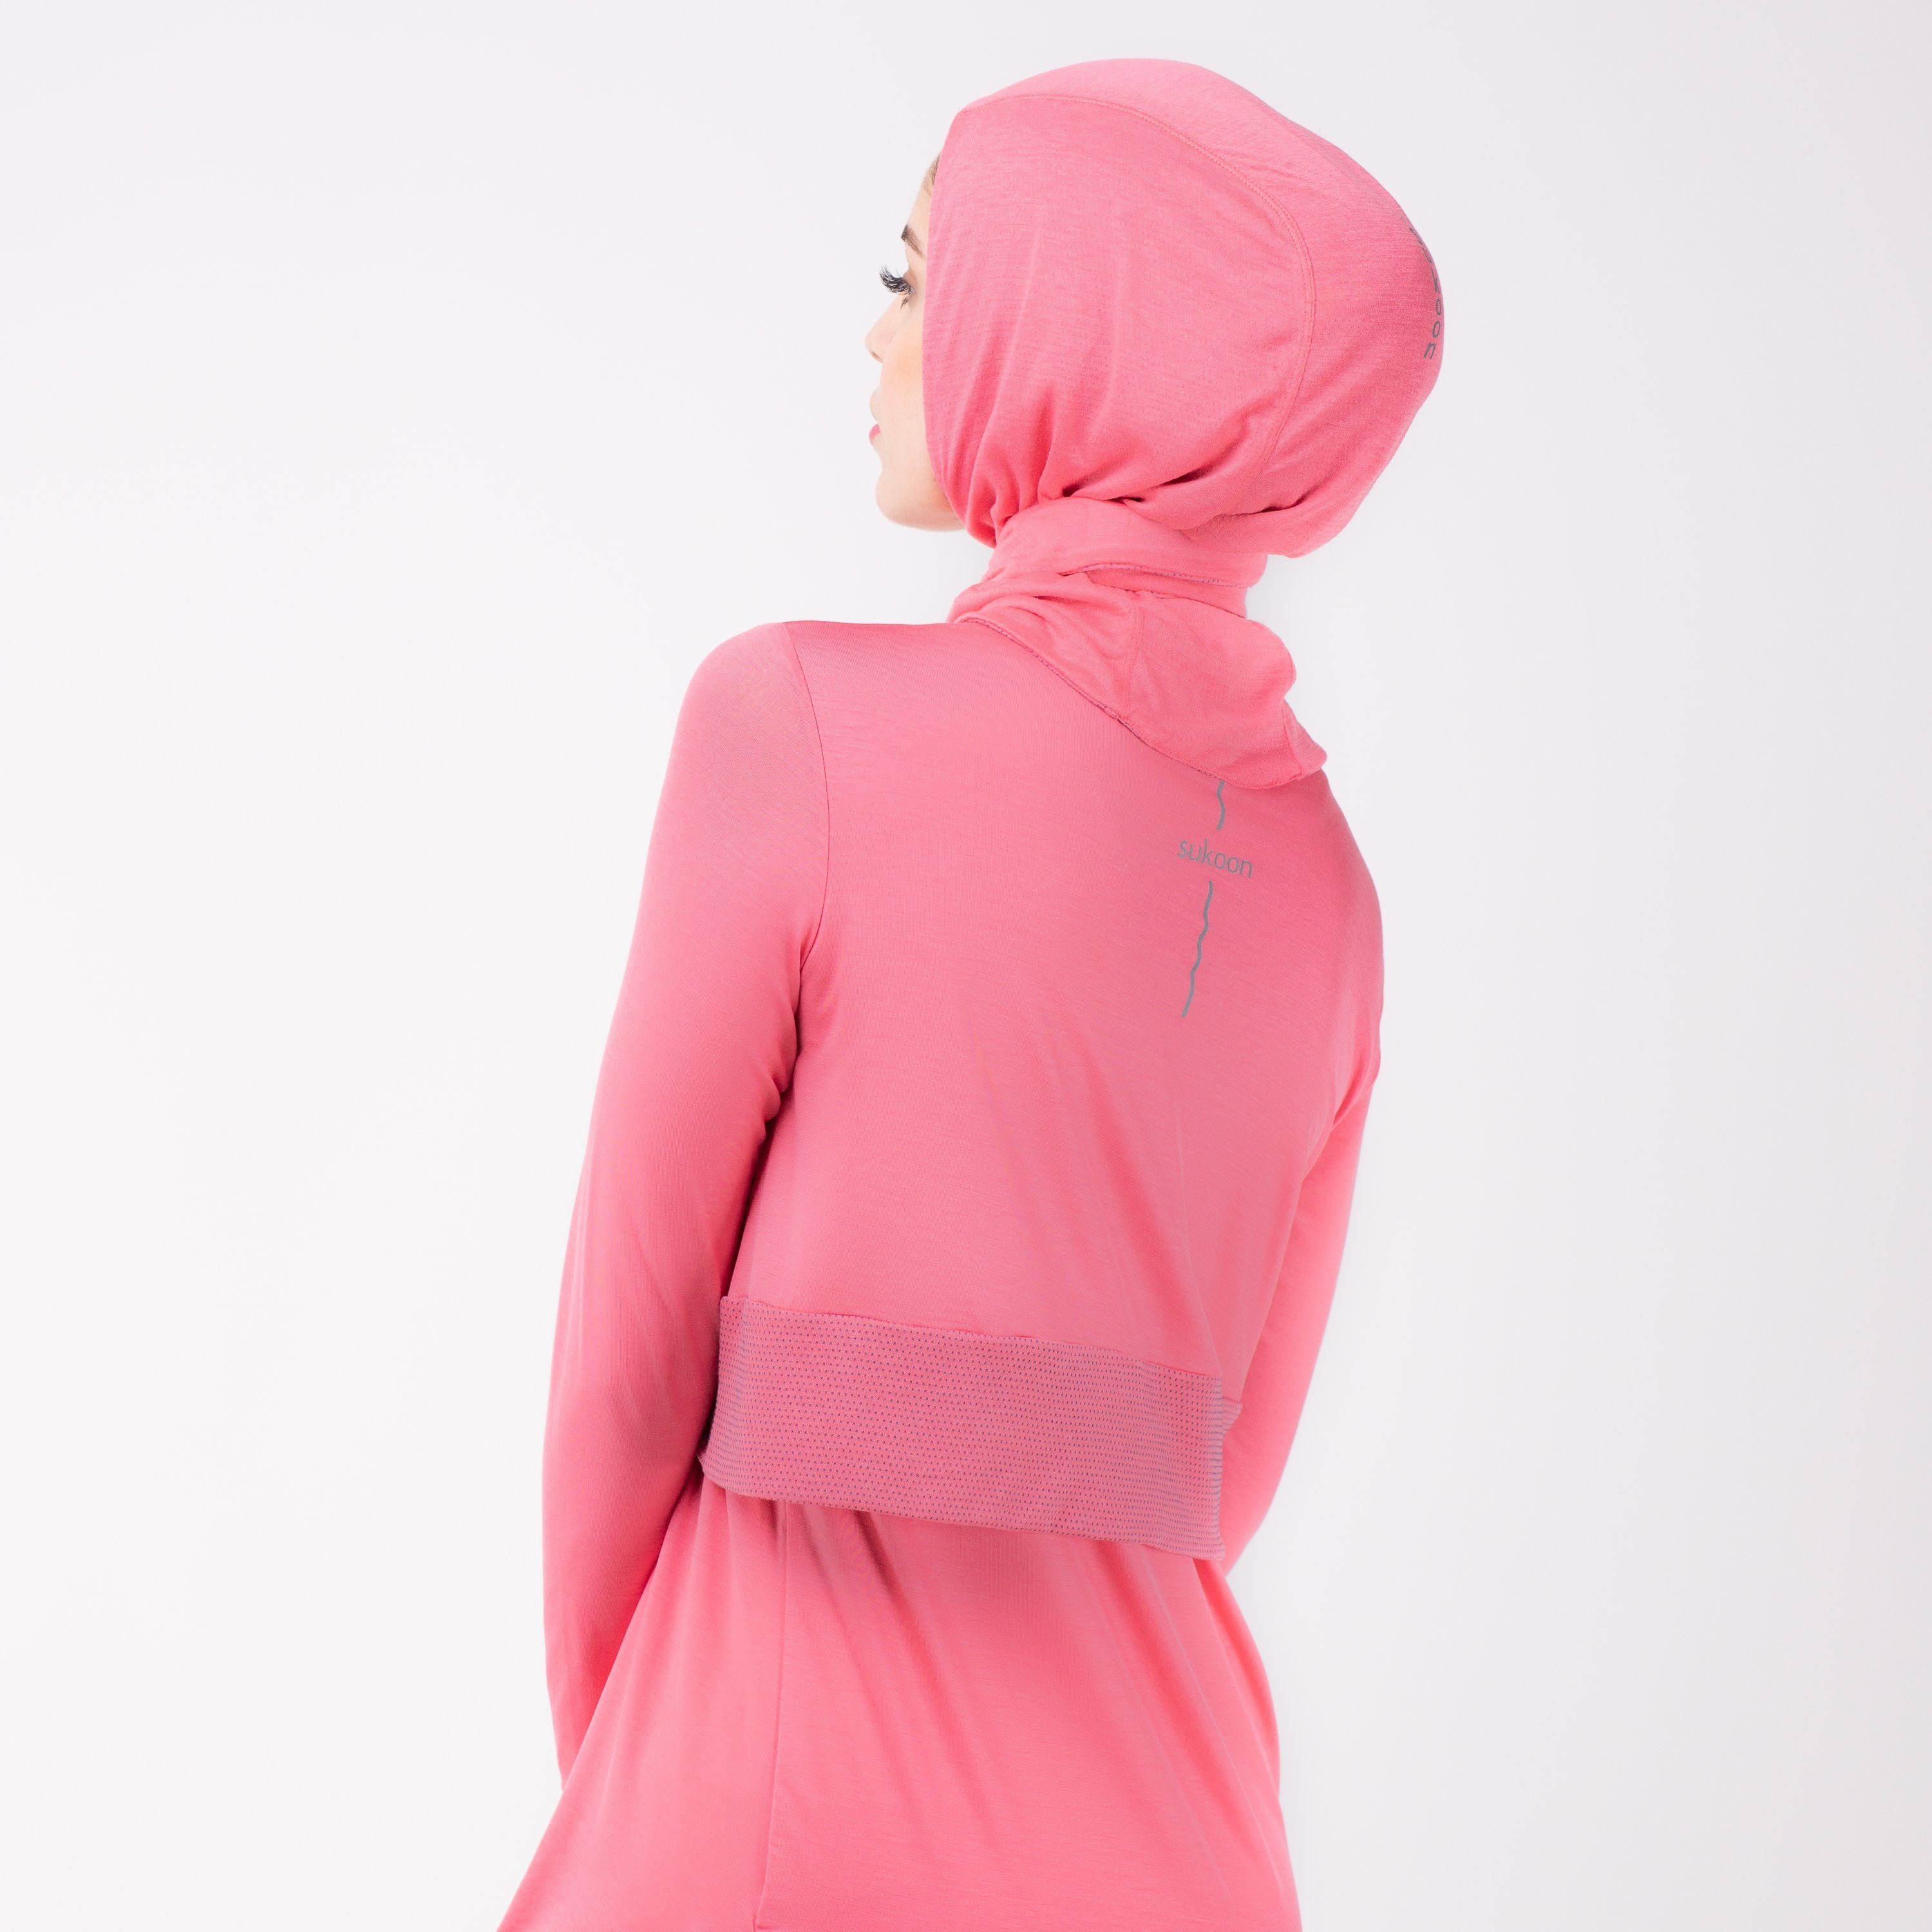 Back detail of a woman in a pink shirt with a matching pink HAWA hijab.